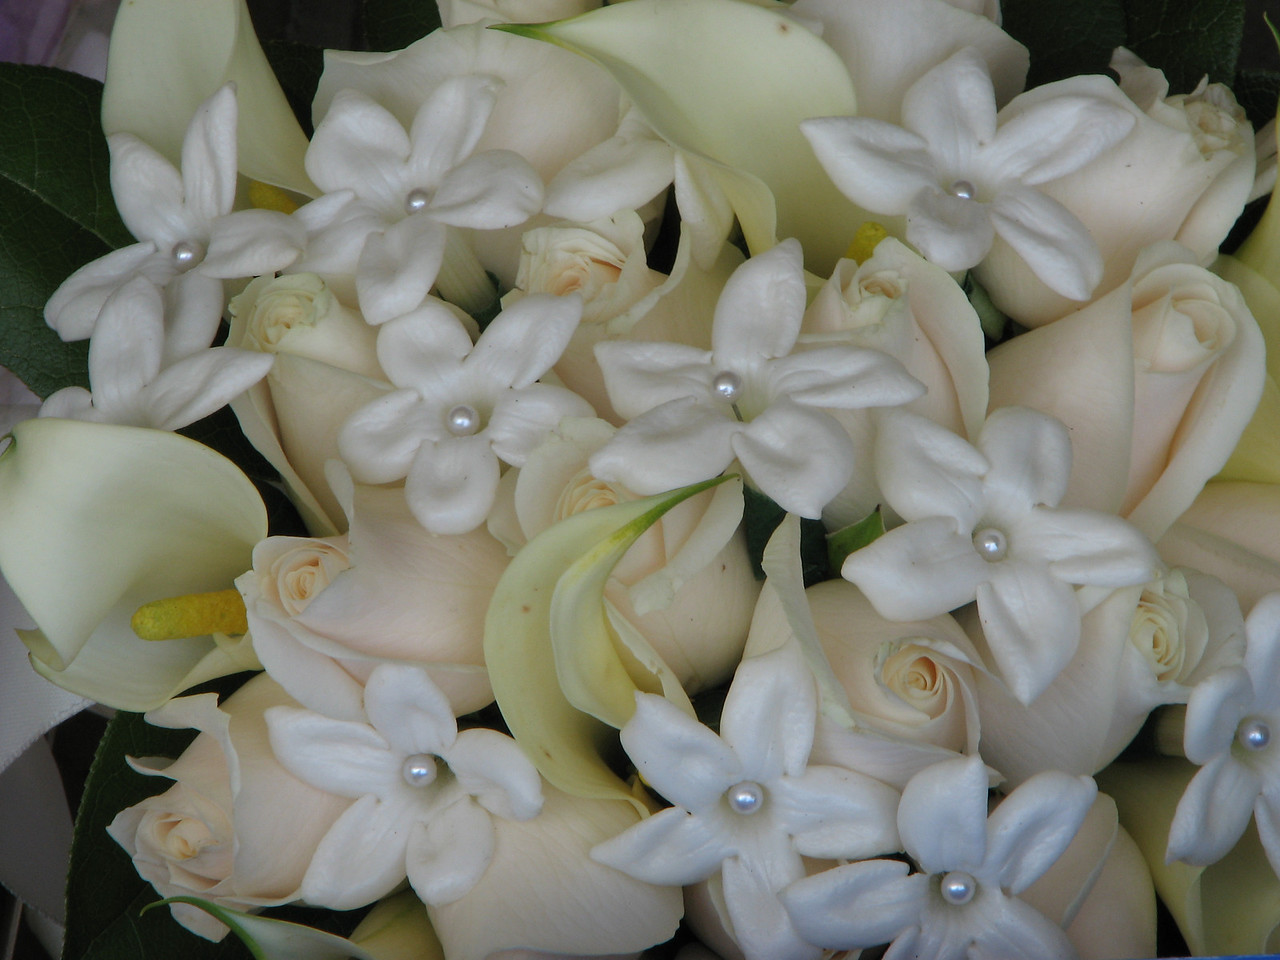 2007 06 09 Sat - Bridal bouquet up close